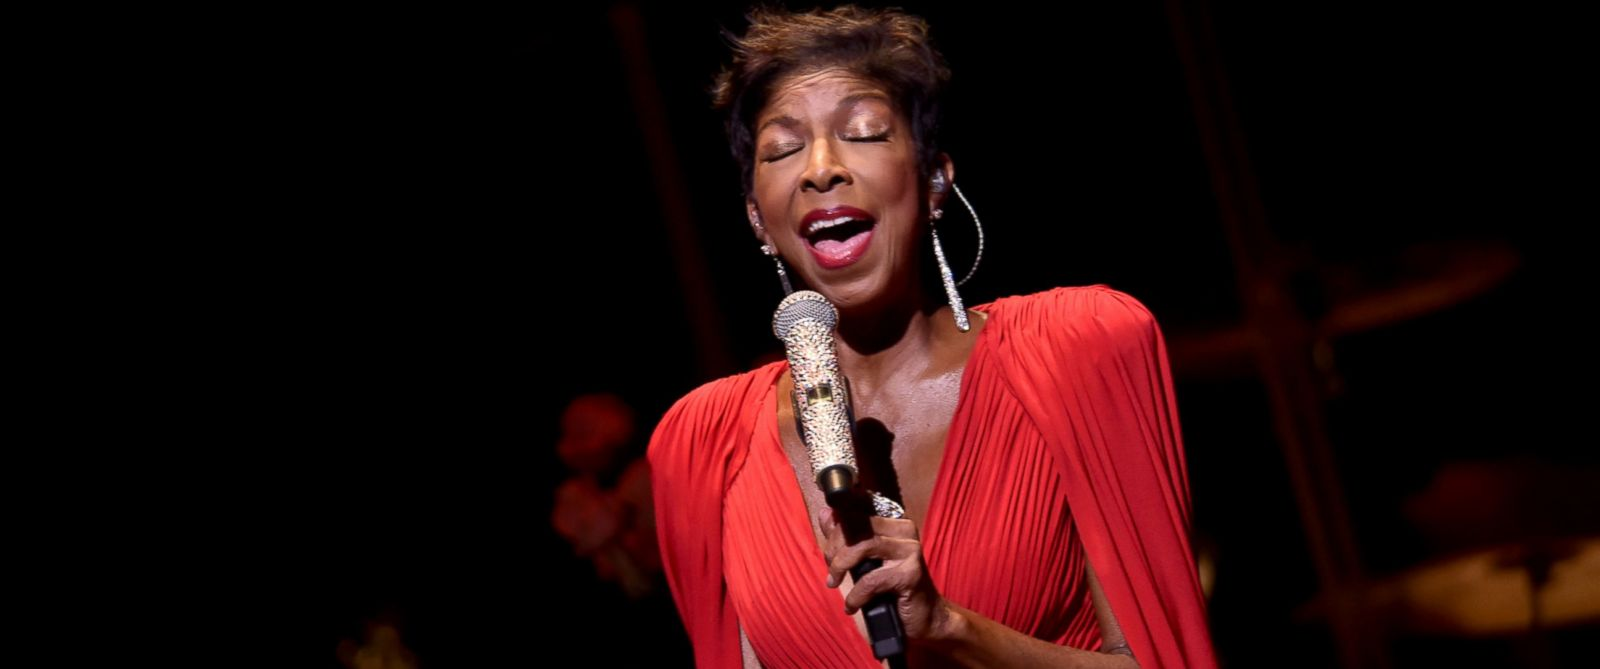 PHOTO: Natalie Cole performs atJazz 91.9 WCLK 41st Anniversary Benefit Concert at Cobb Energy Performing Arts Center, June 26, 2015, in Atlanta.